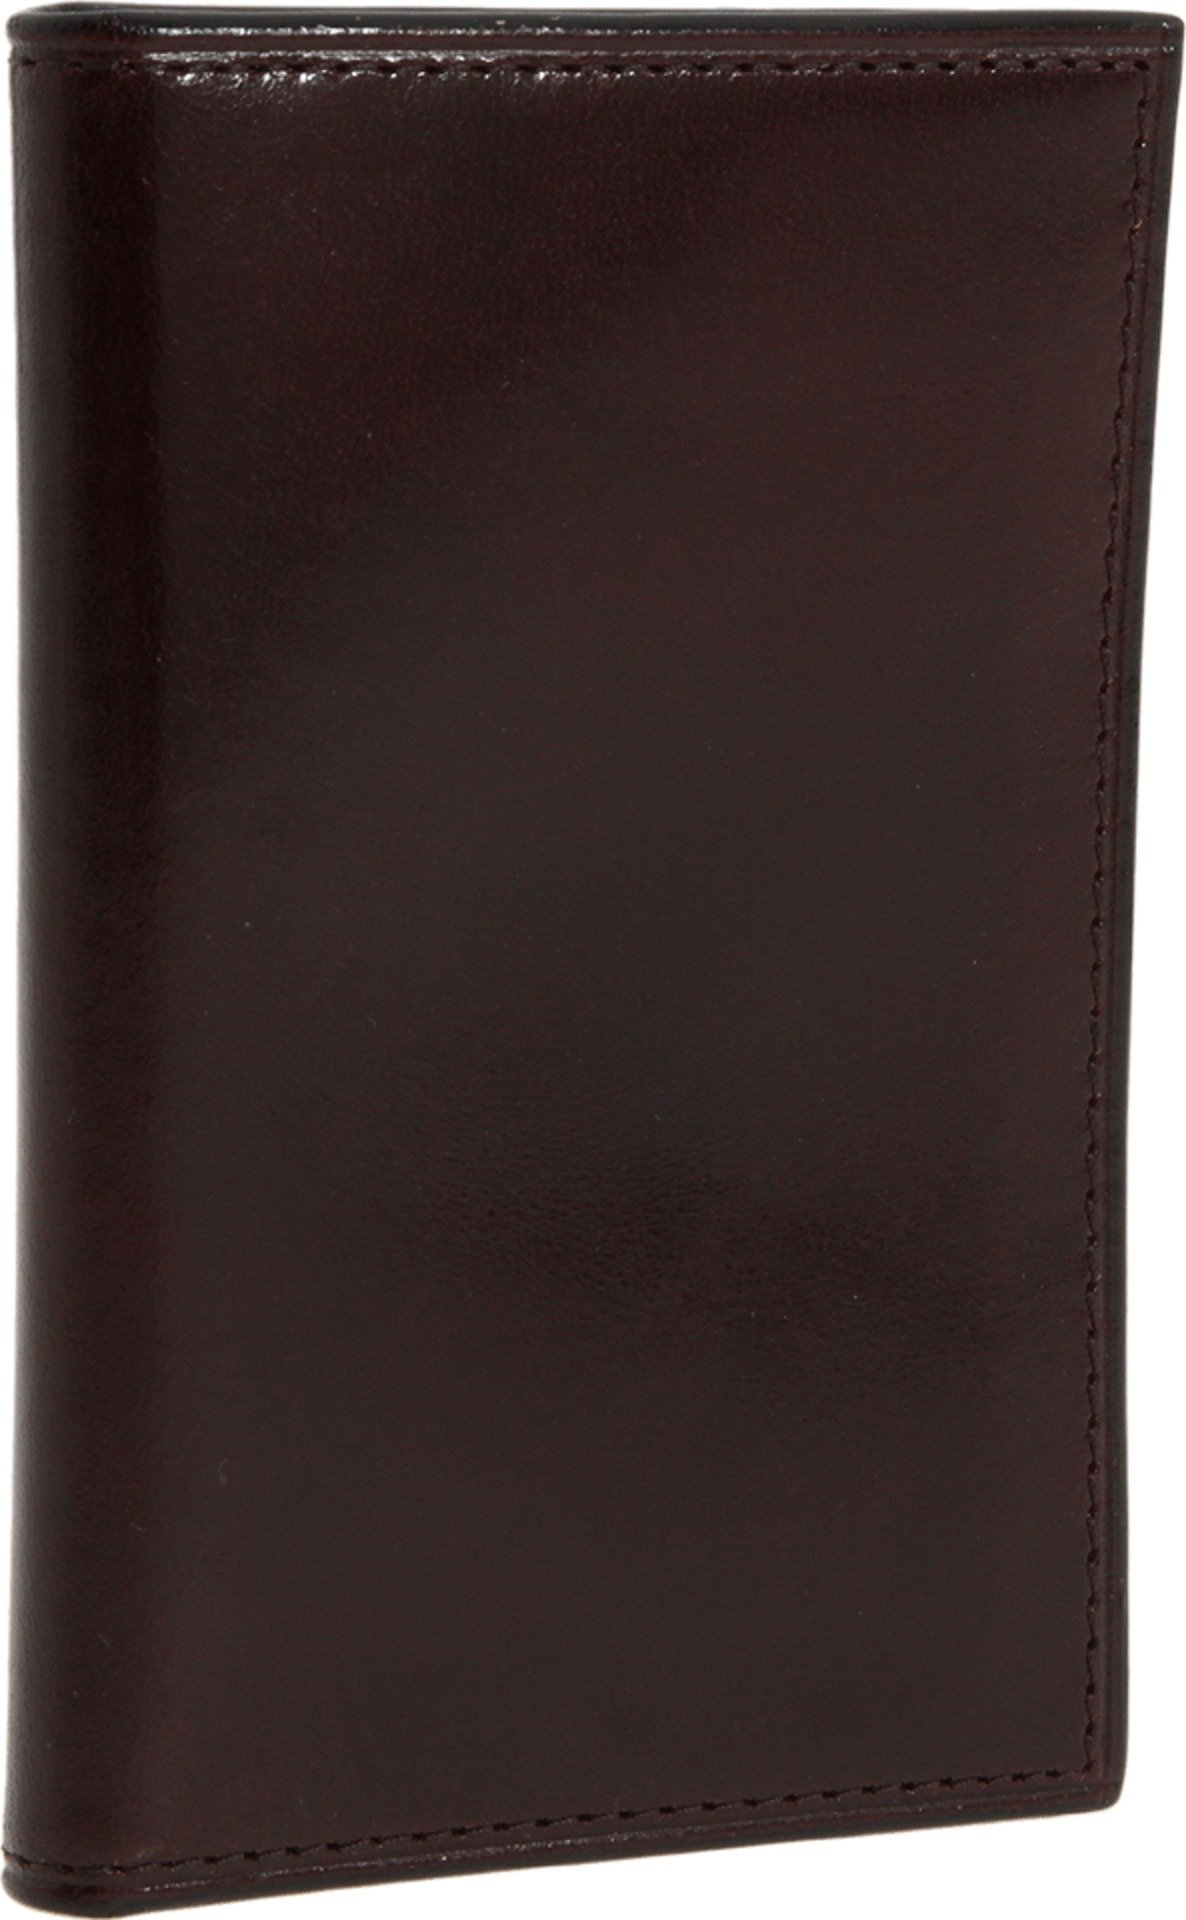 Bosca Men's Old Leather Collection - 8 Pocket Credit Card Case Dark Brown Leather One Size